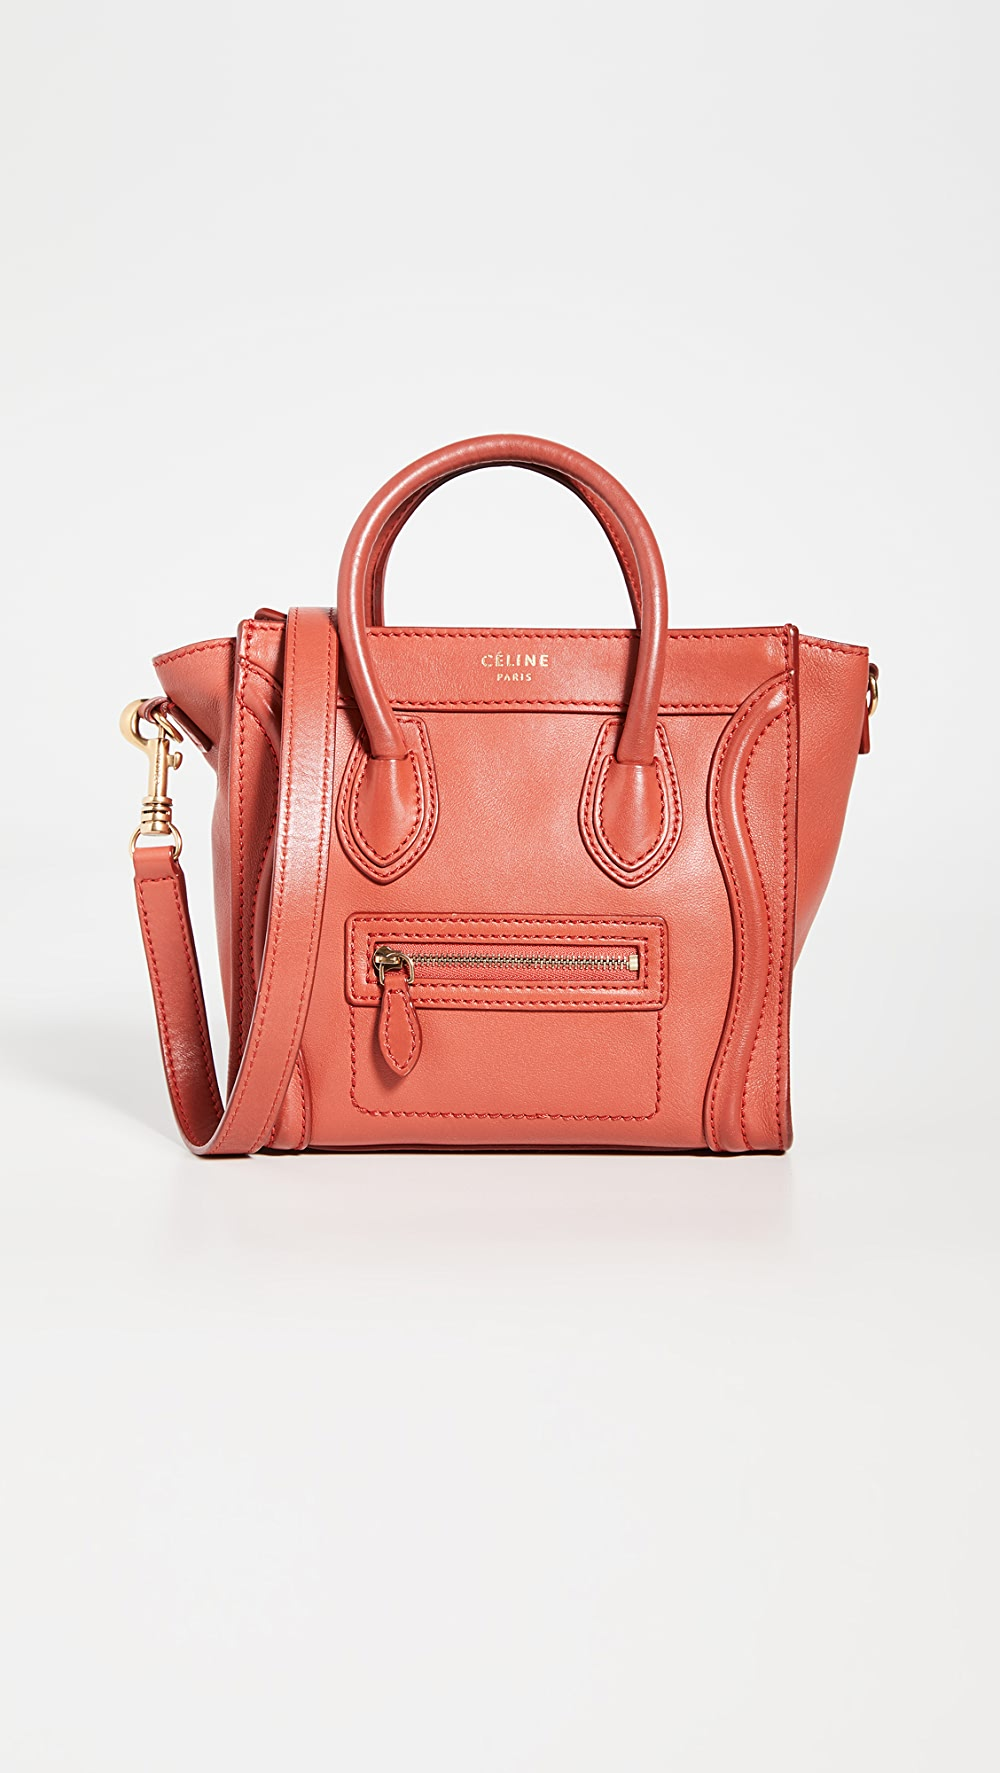 100% Quality What Goes Around Comes Around - Celine Red Smooth Luggage Nano Last Style